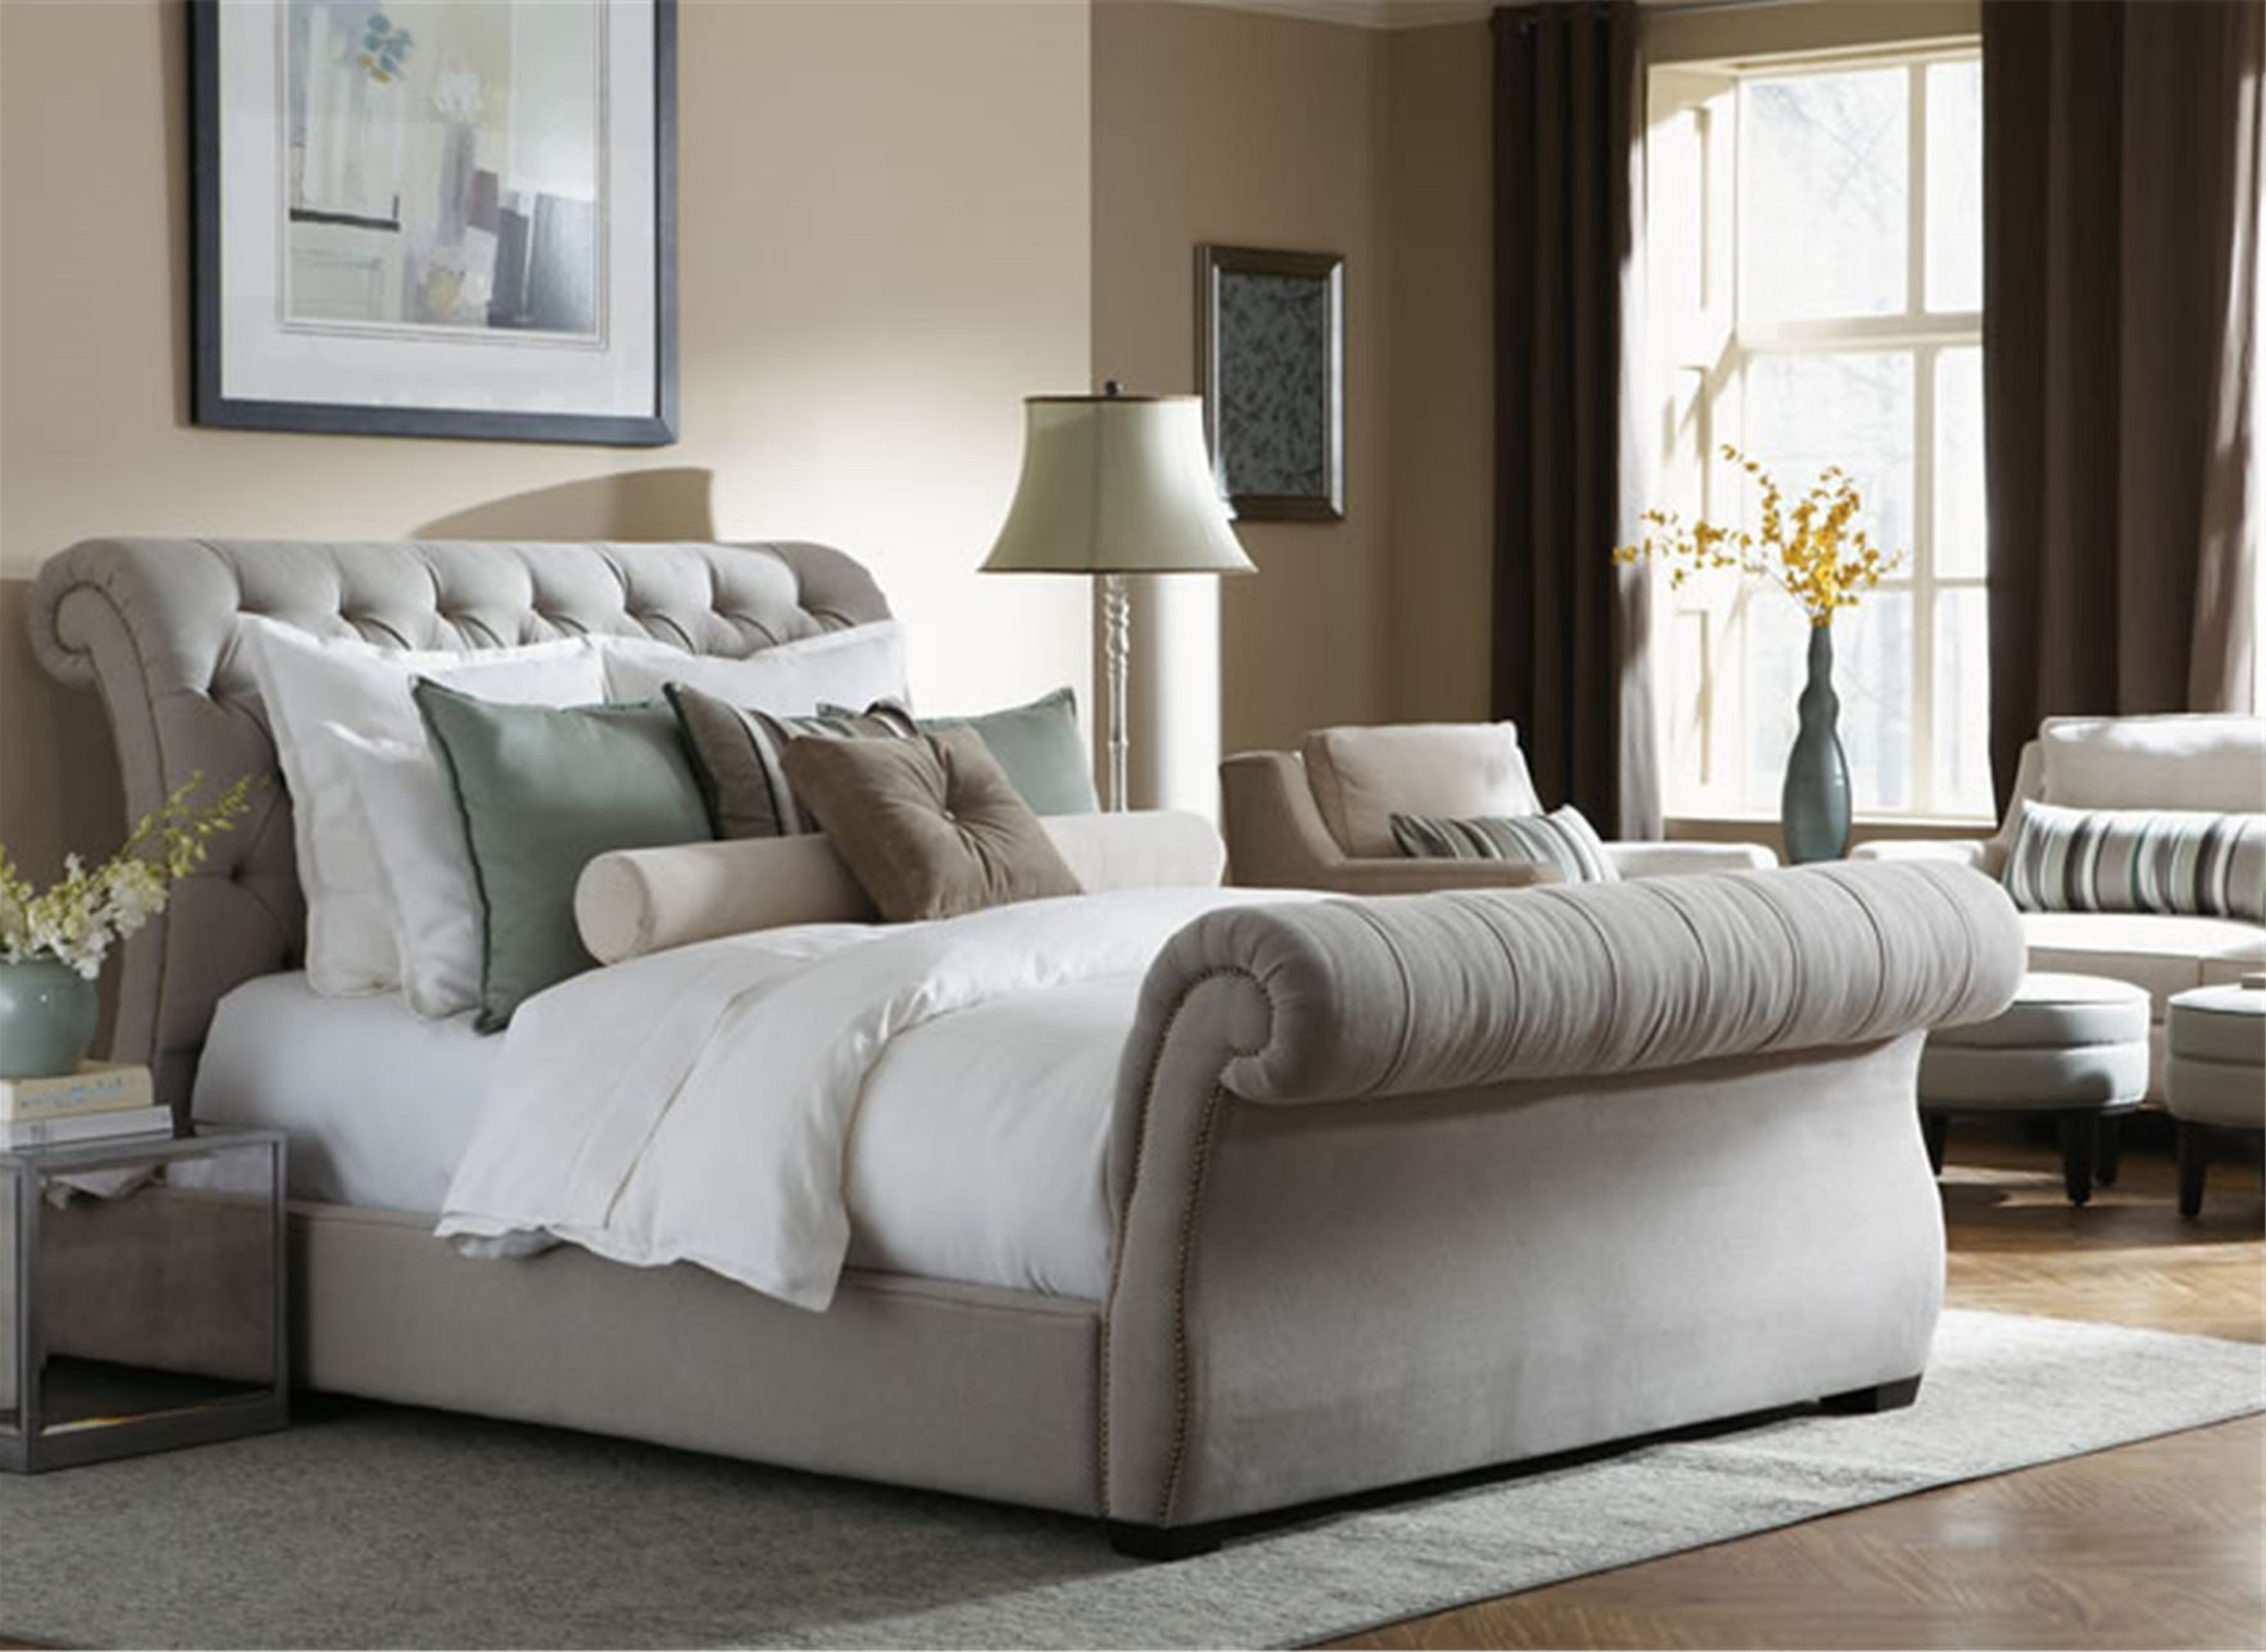 R-187 Upholstered Bed